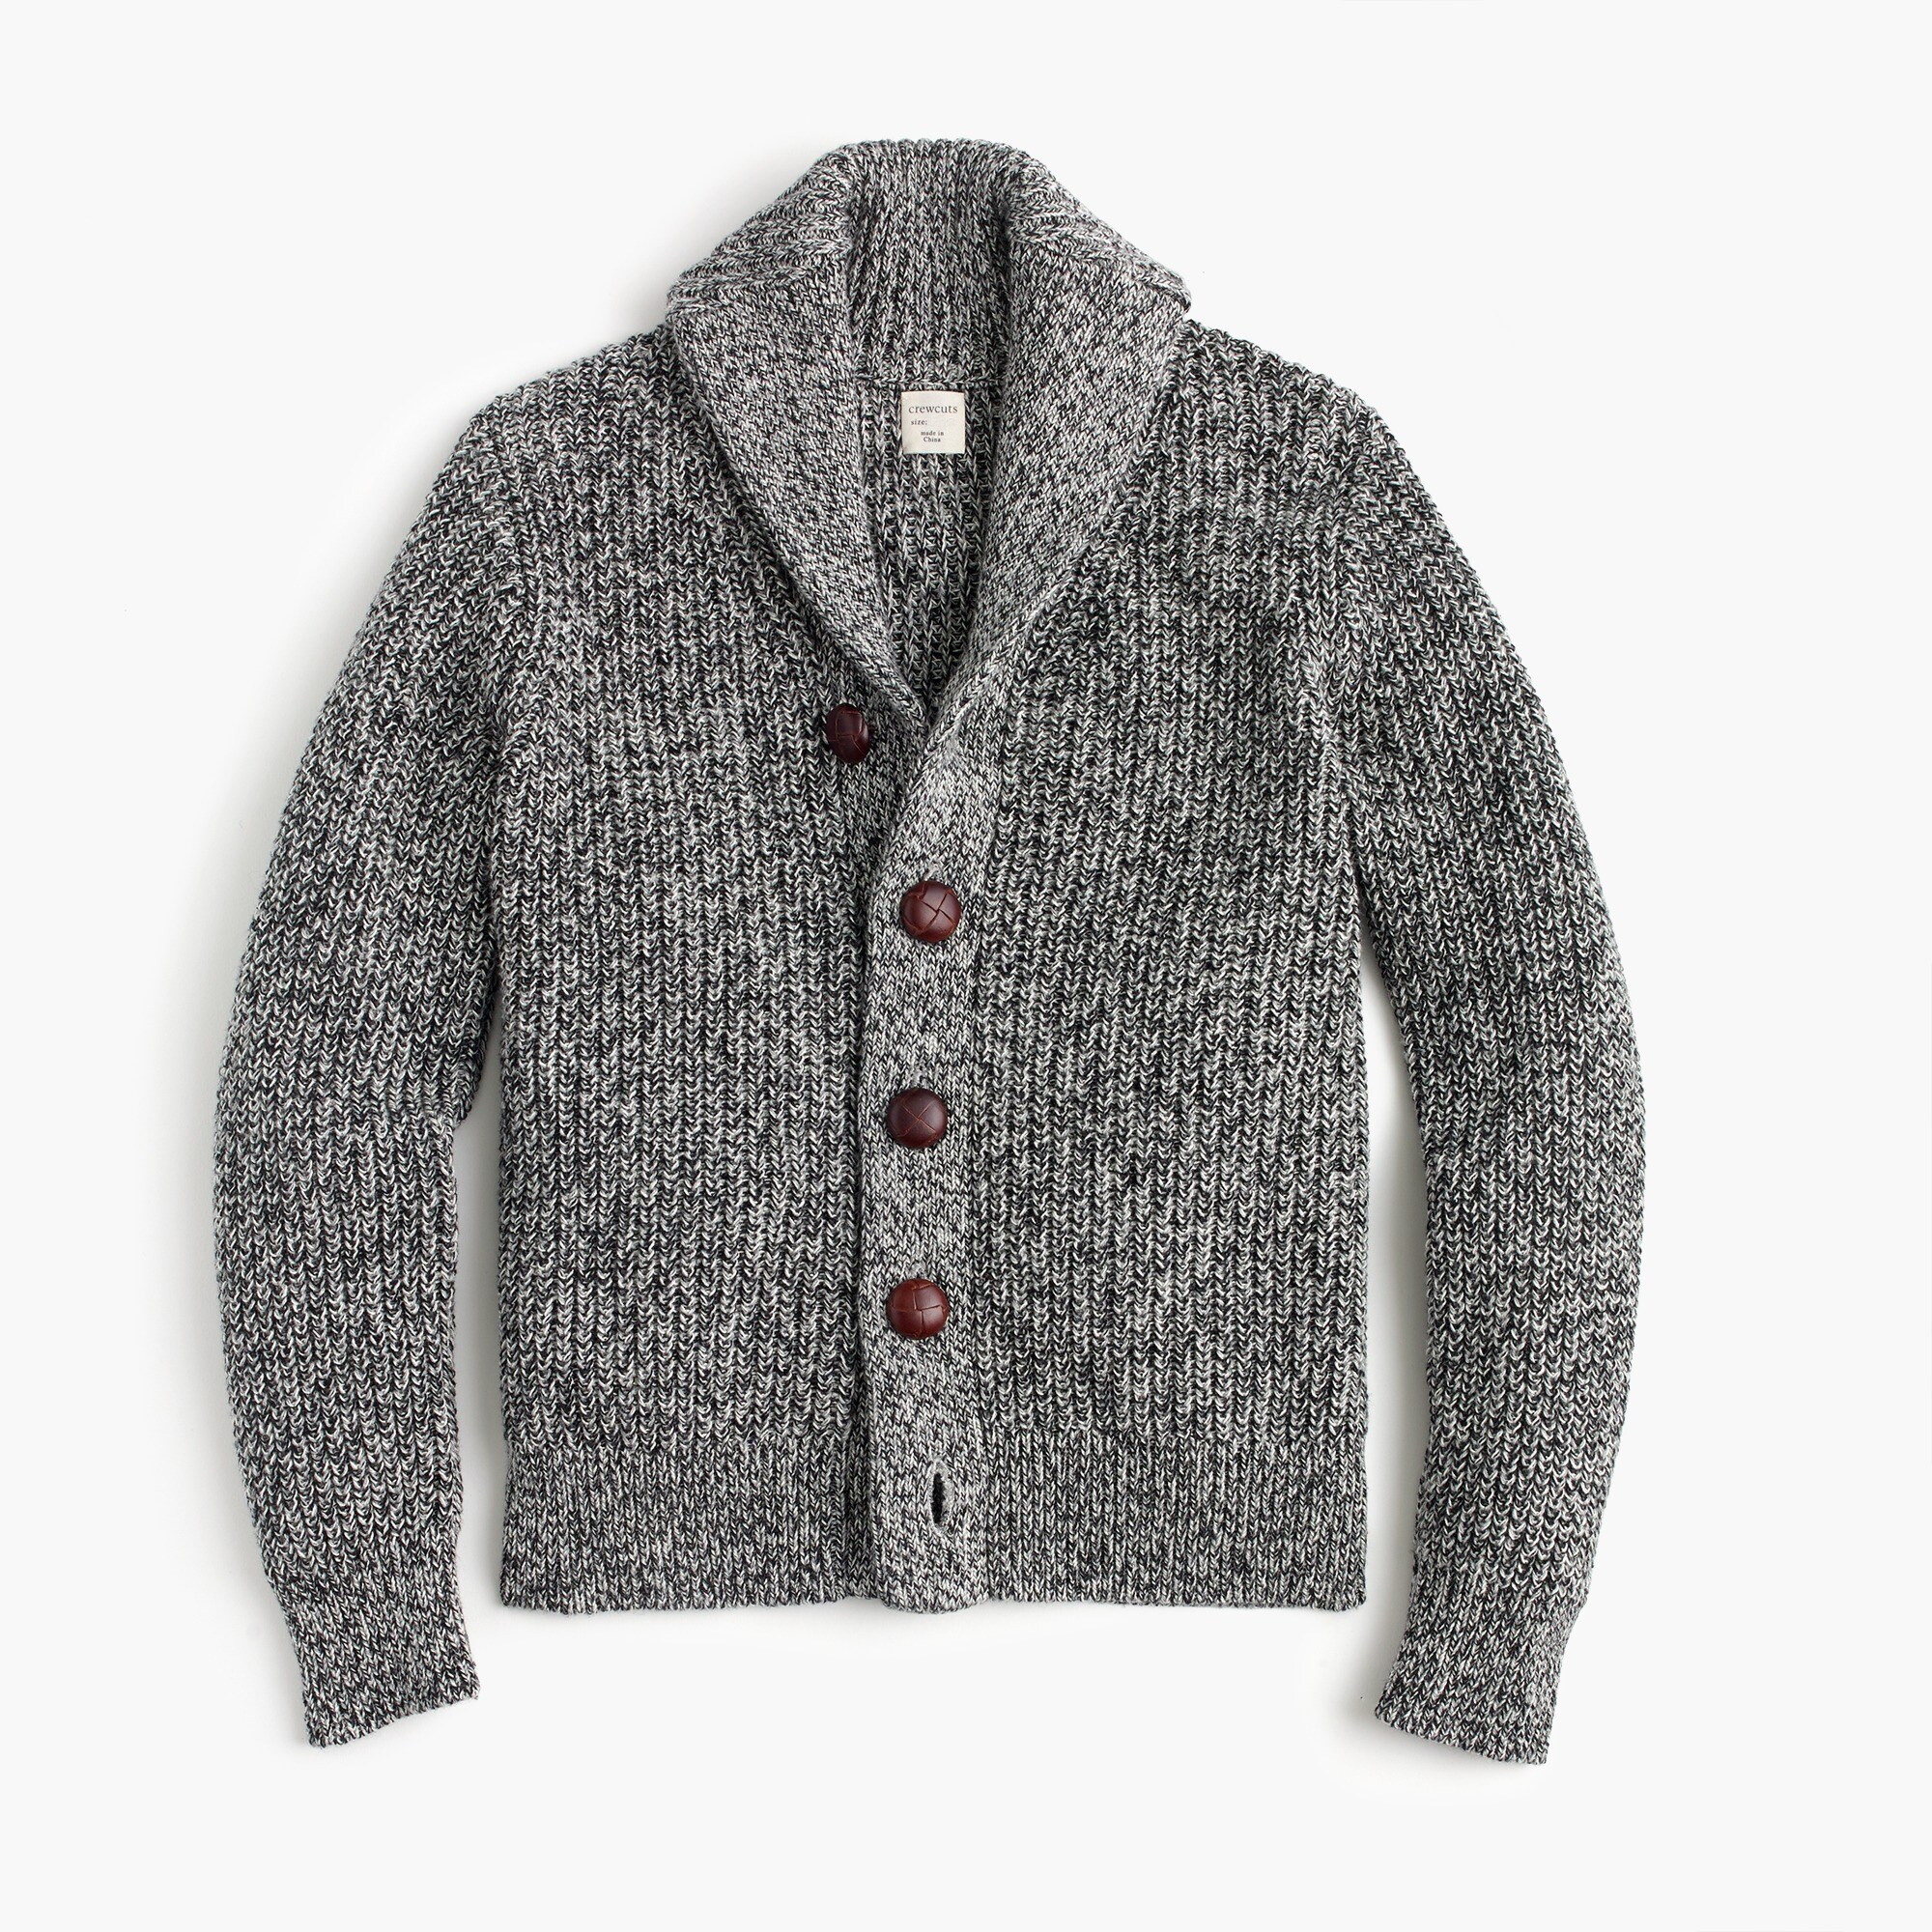 Boys' marled cotton shawl-collar cardigan sweater